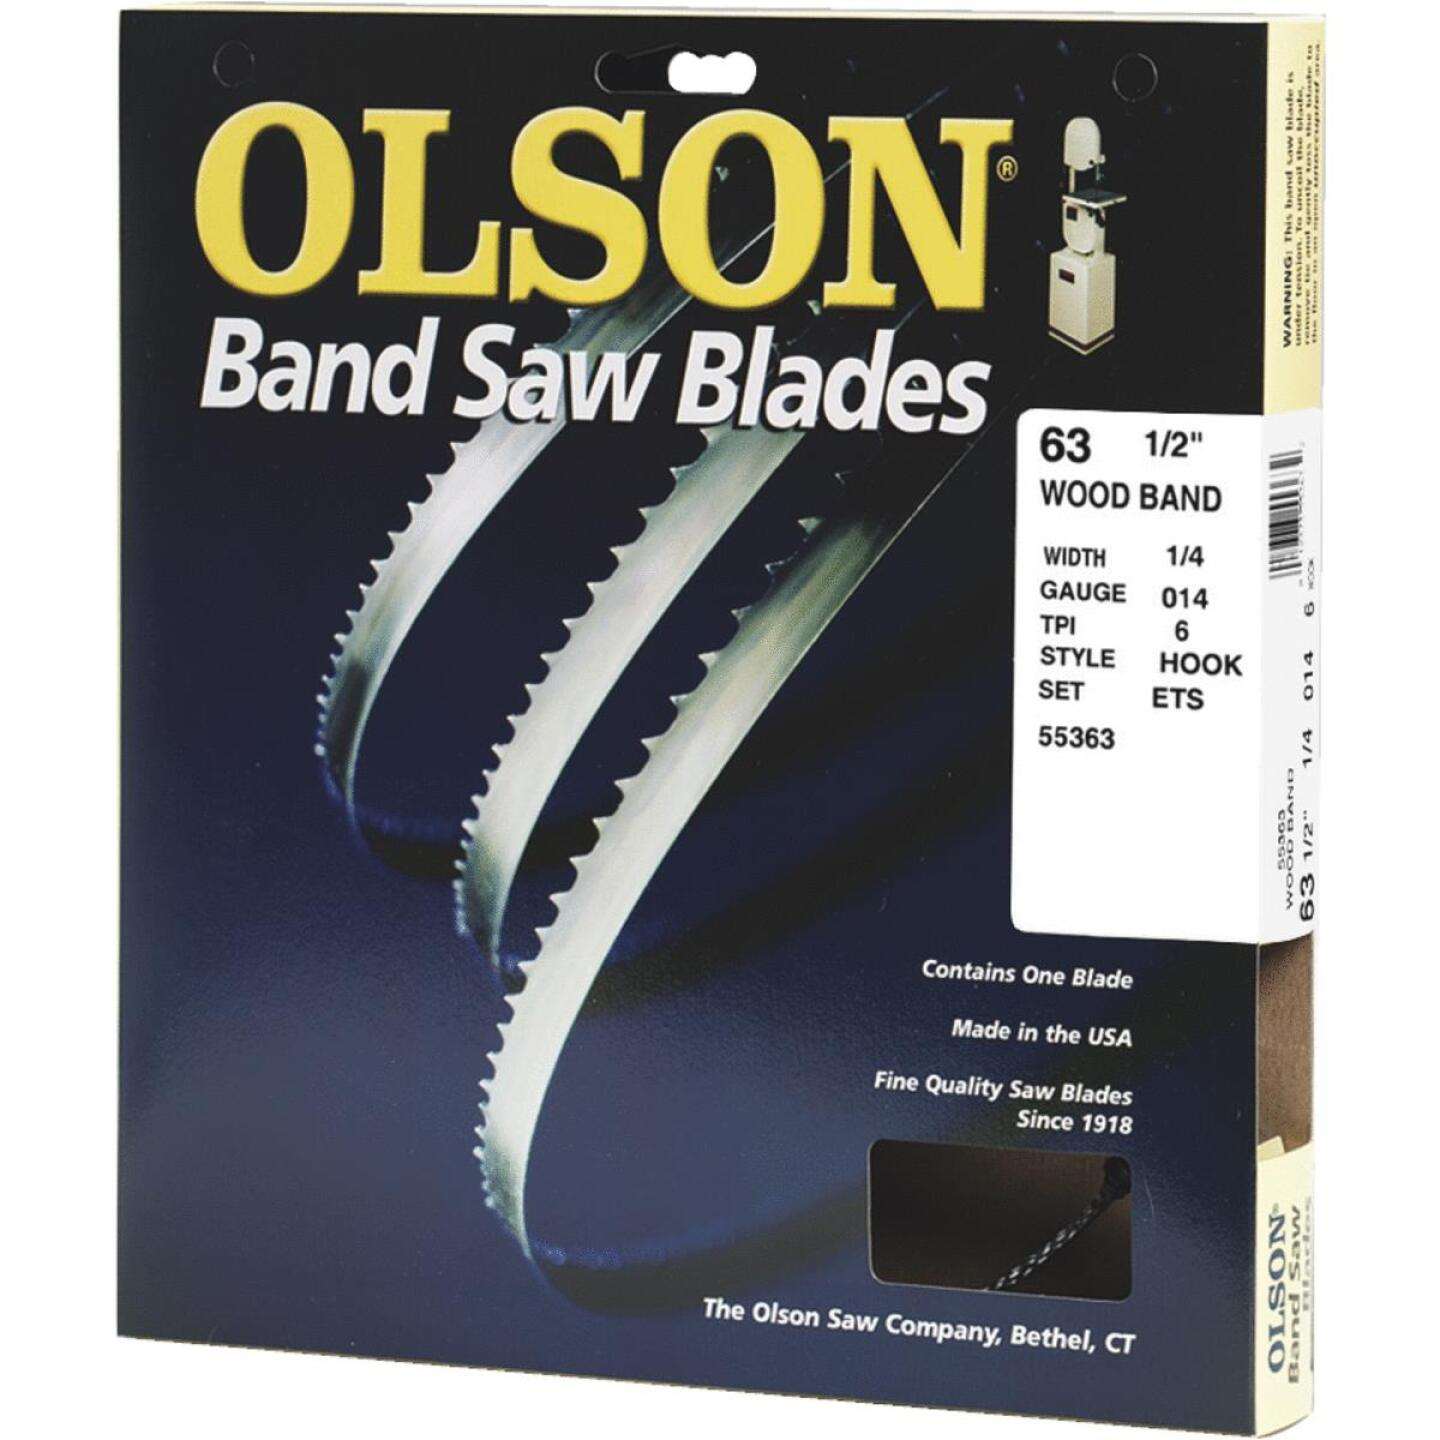 Olson 63-1/2 In. x 1/4 In. 6 TPI Hook Wood Cutting Band Saw Blade Image 1